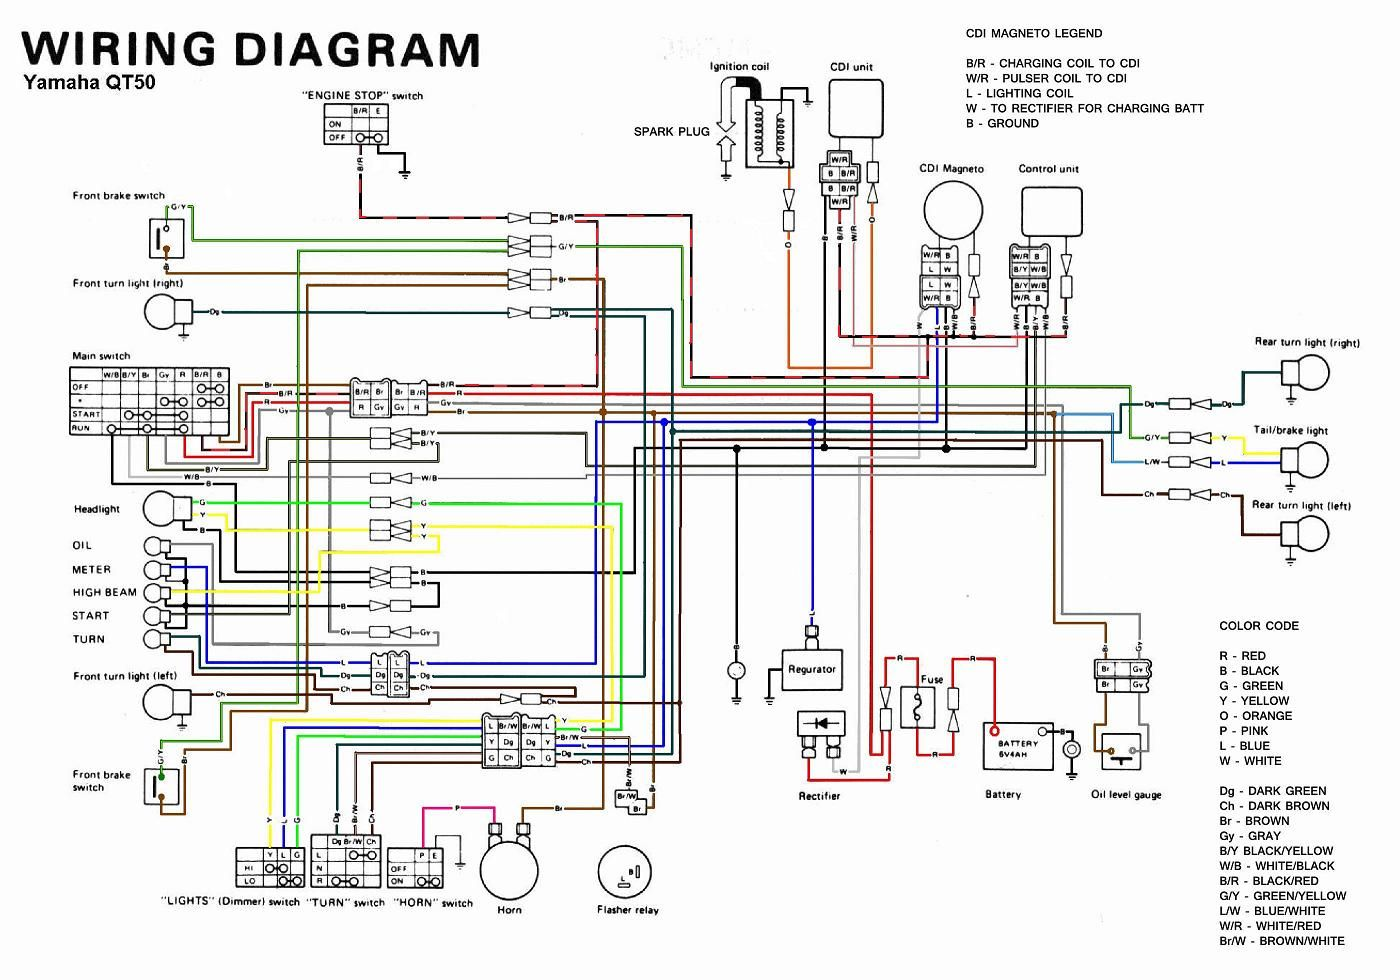 medium resolution of image result for 1989 yamaha zuma wiring diagram 1989 yamaha zuma yamaha schematics image result for